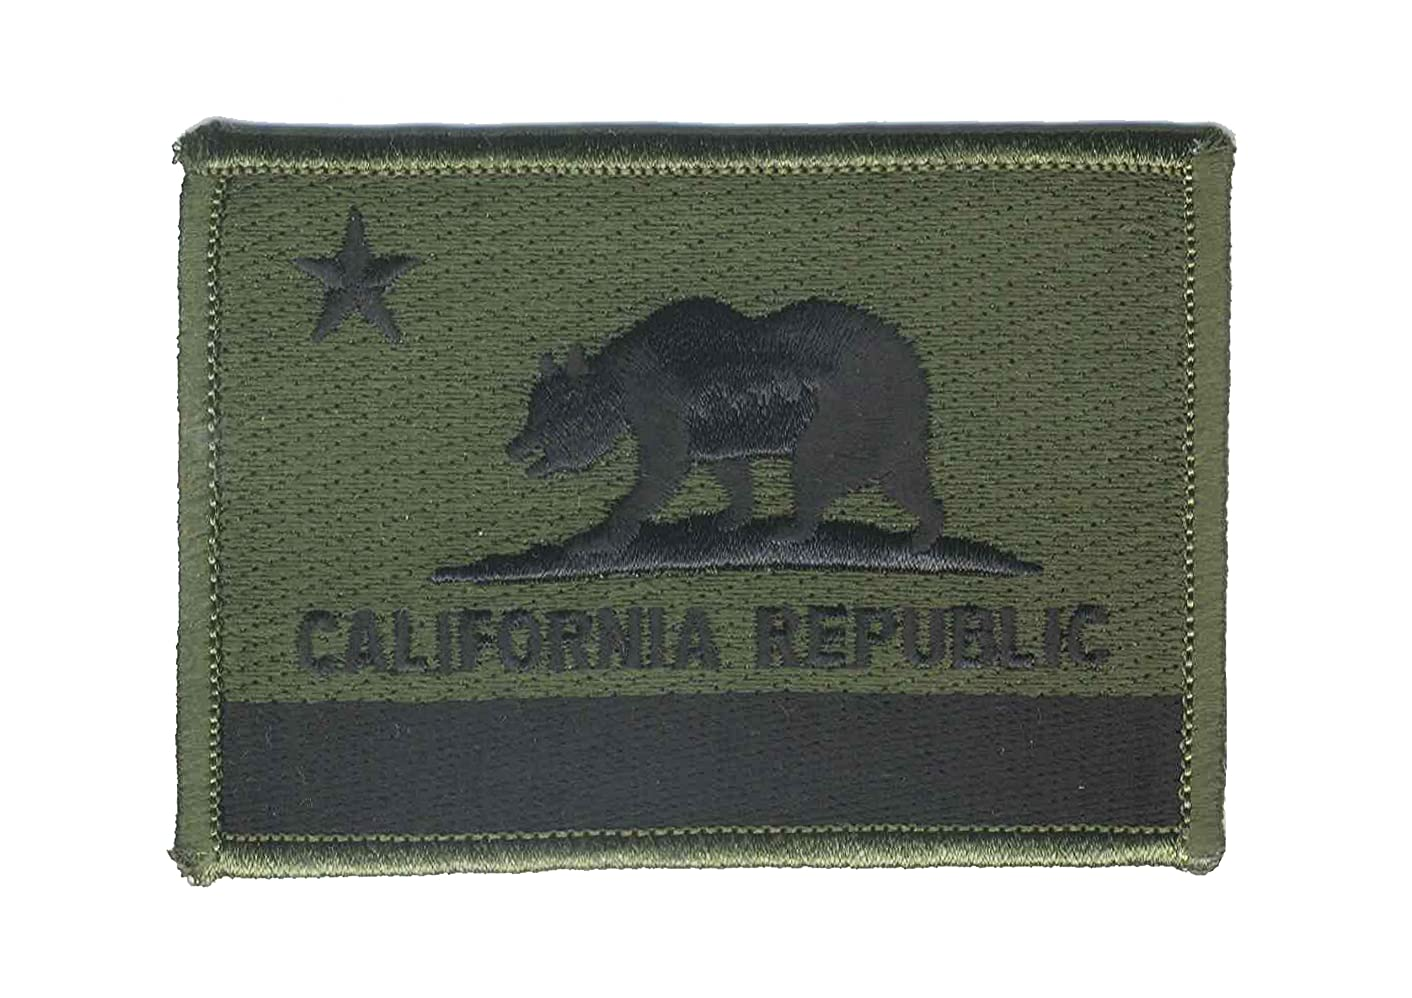 Strange Cargo California Republic State Olive Drab Flag Embroidered Patch 2.5